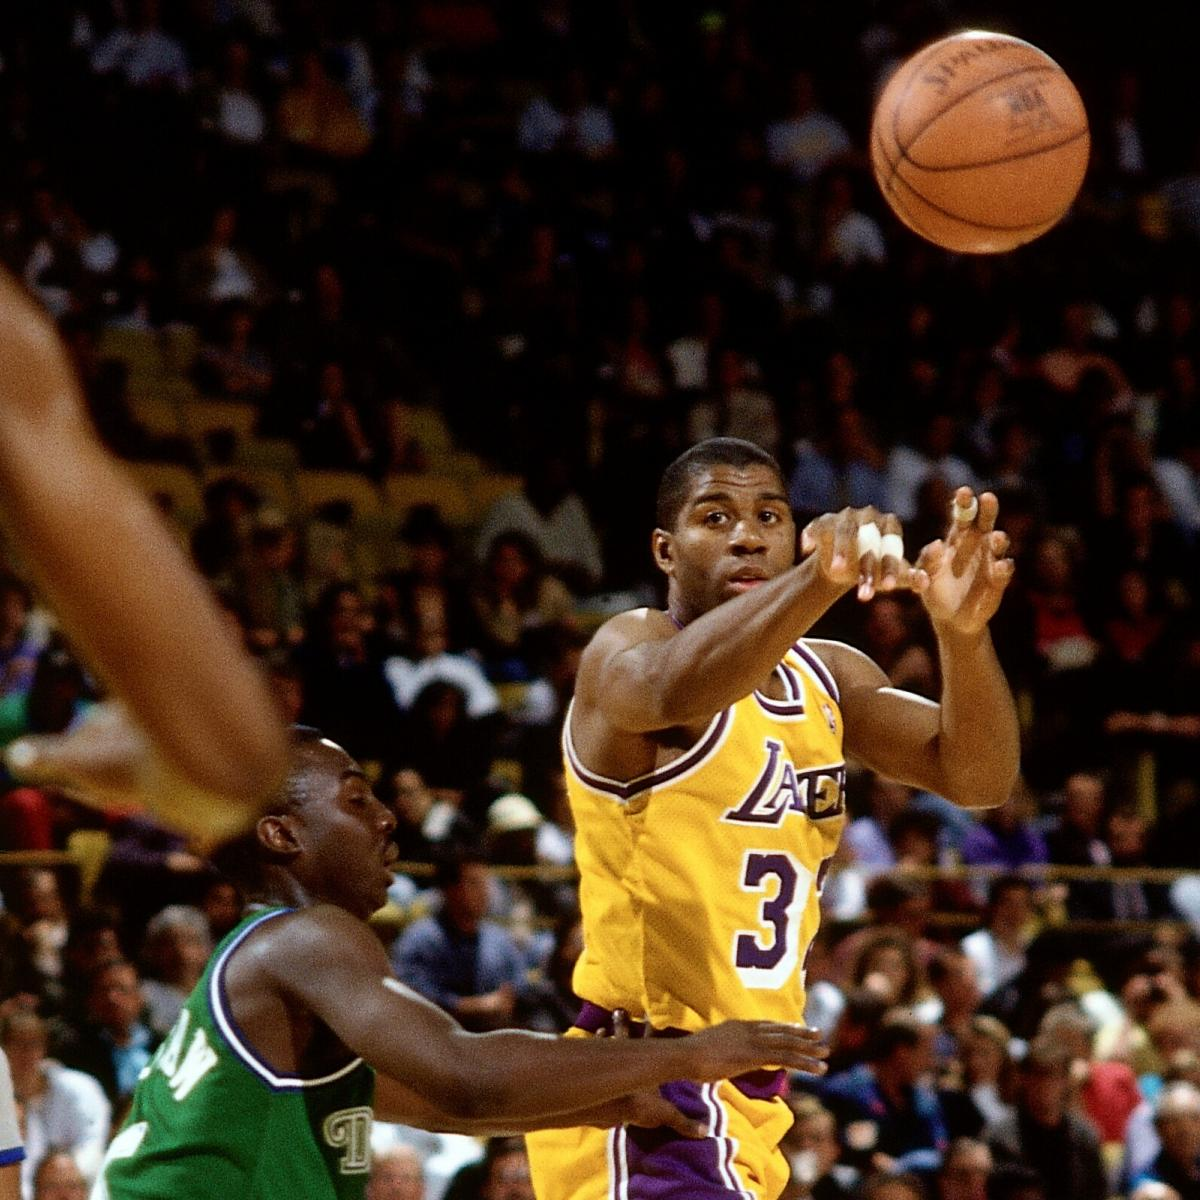 Colorado Shooting R H Youtube Com: Celebrate Magic Johnson's 55th Birthday With Some Of His